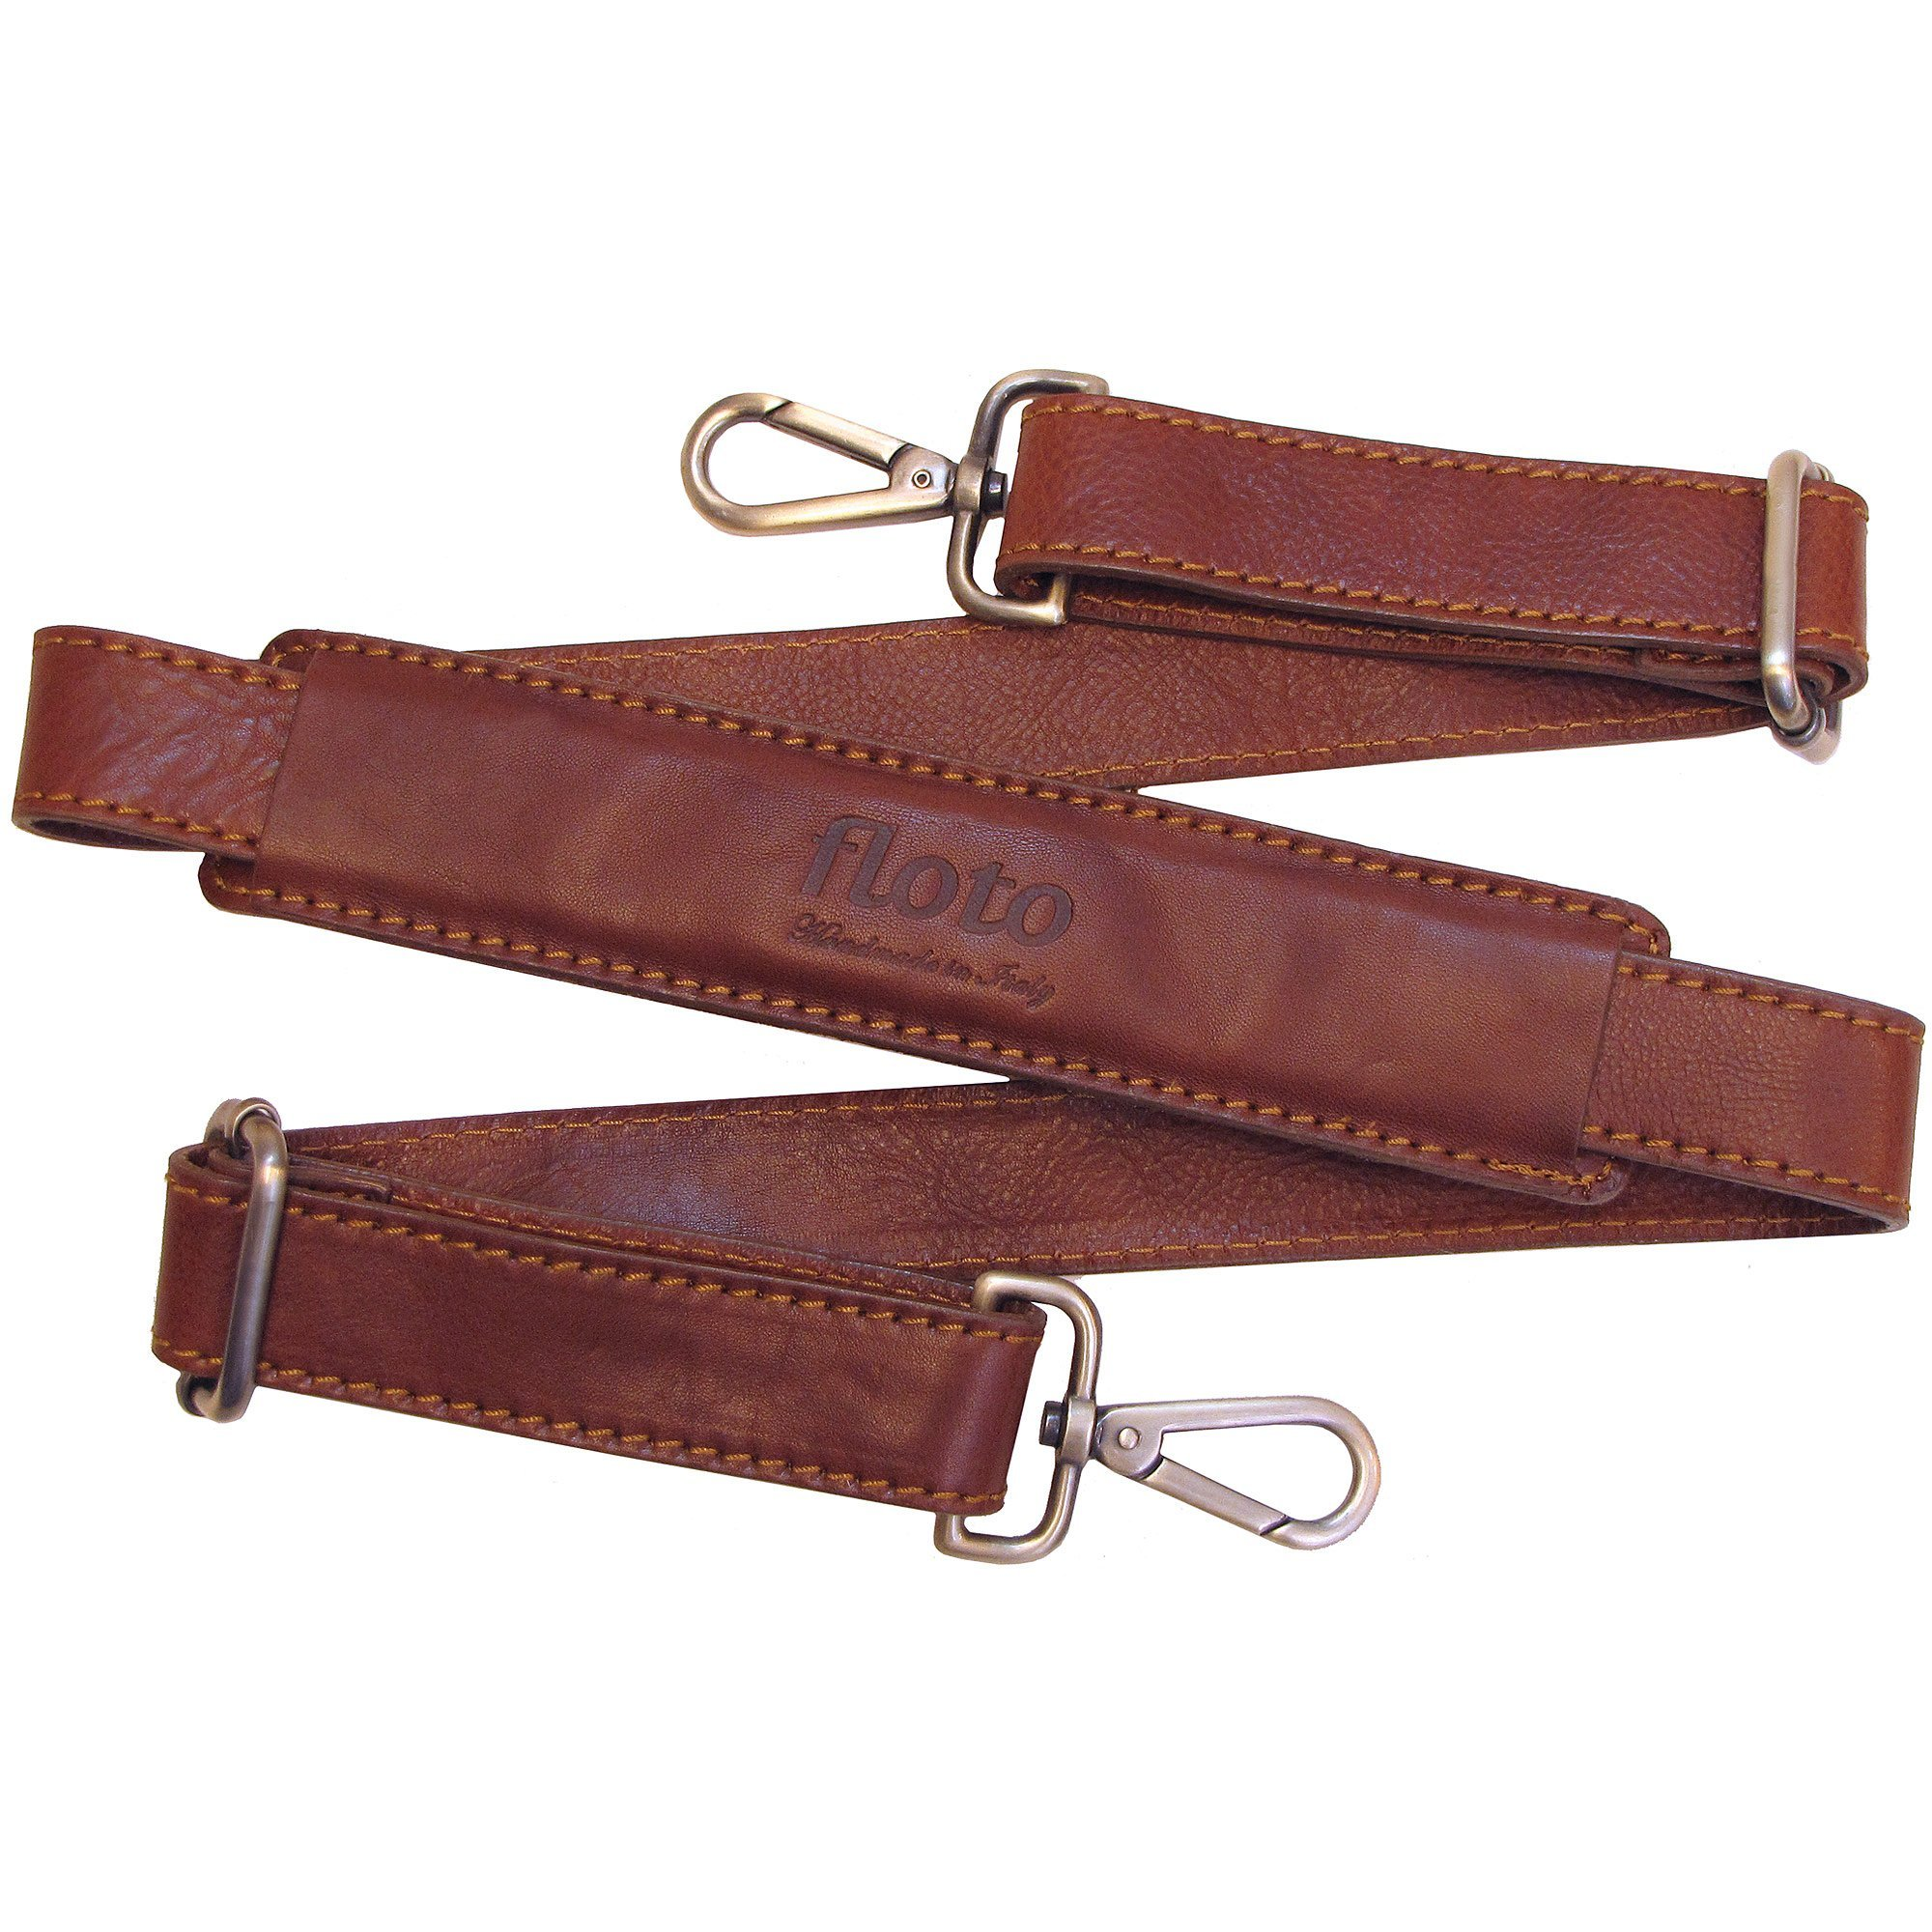 Floto Leather Grande Strap in Saddle Brown for Roma Duffle, Cabin Bag, Travel Bag